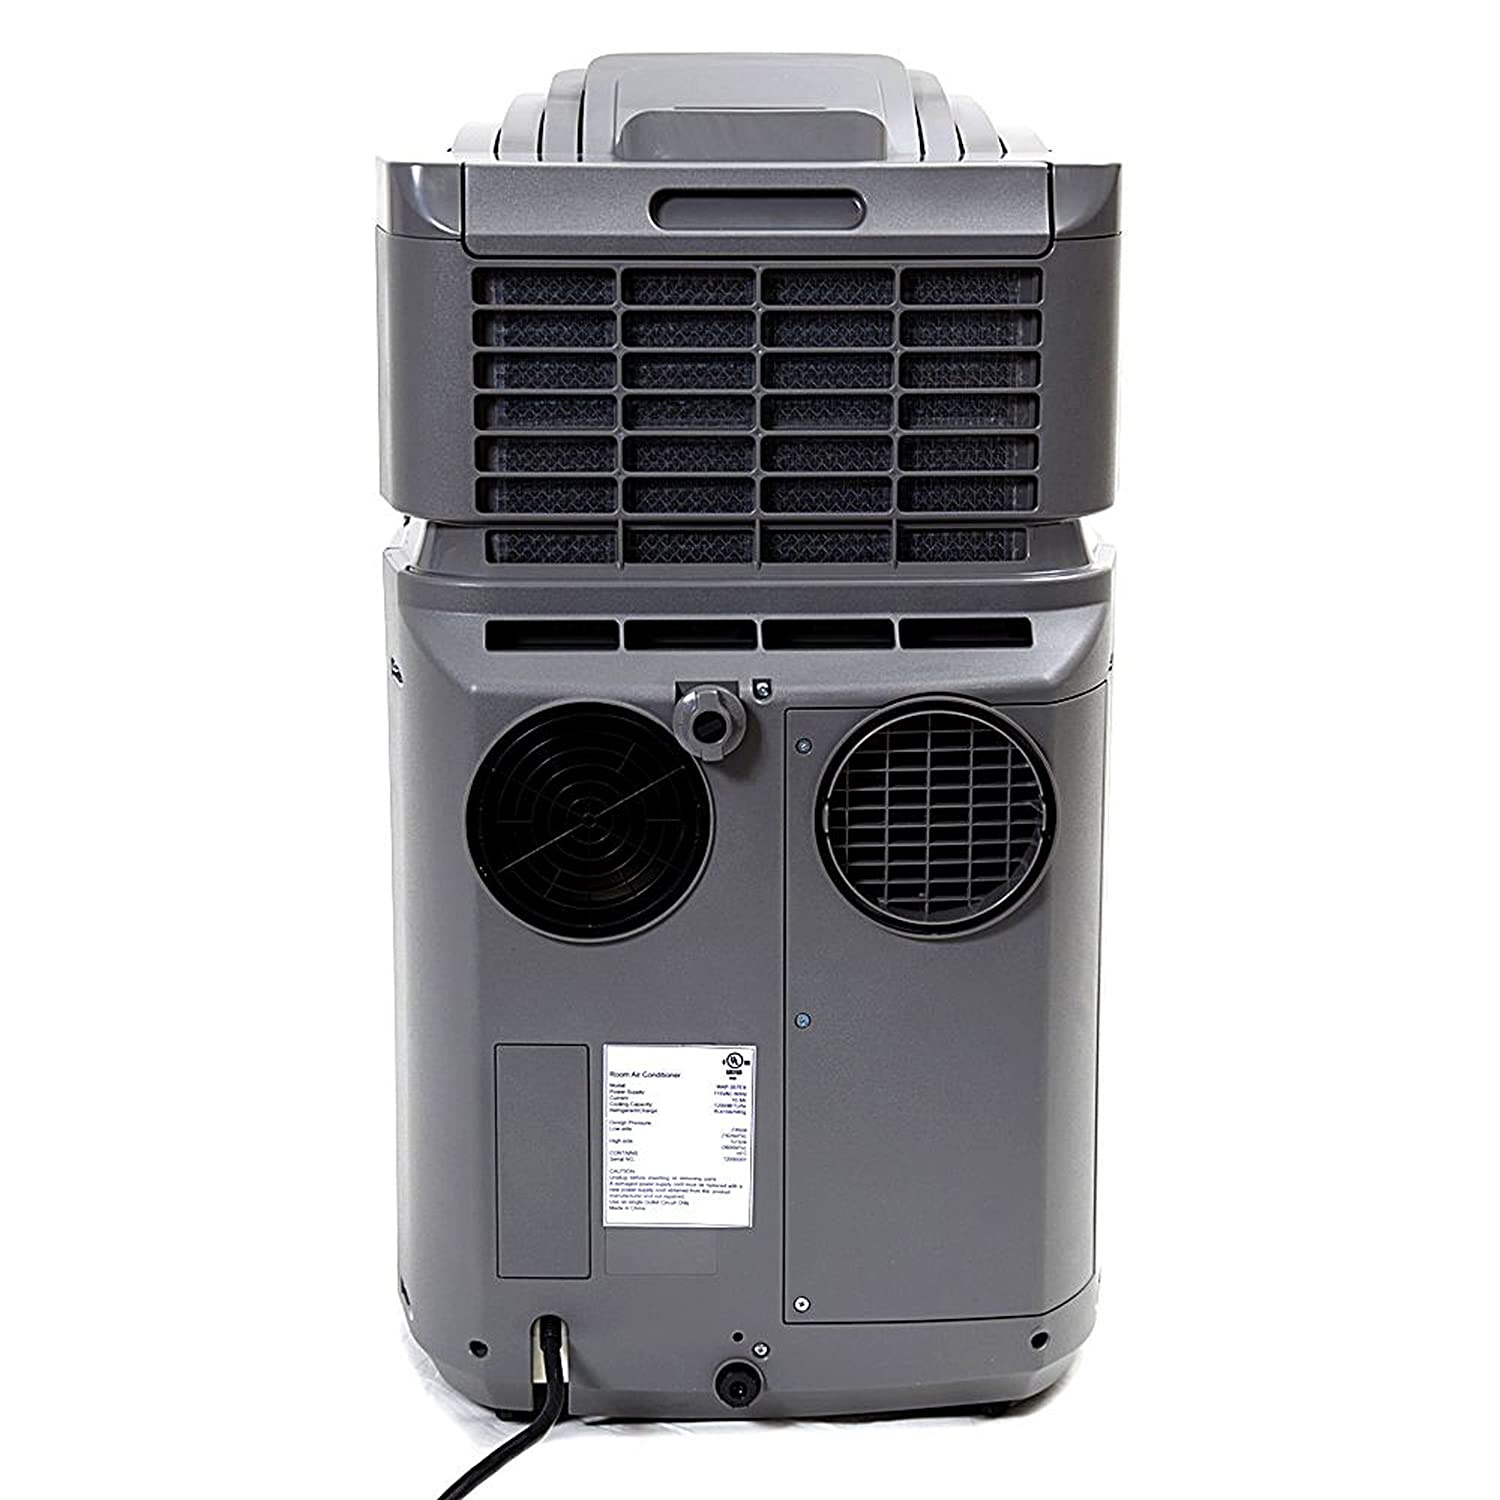 11 mon ions about portable air - Ventless Portable Air Conditioner